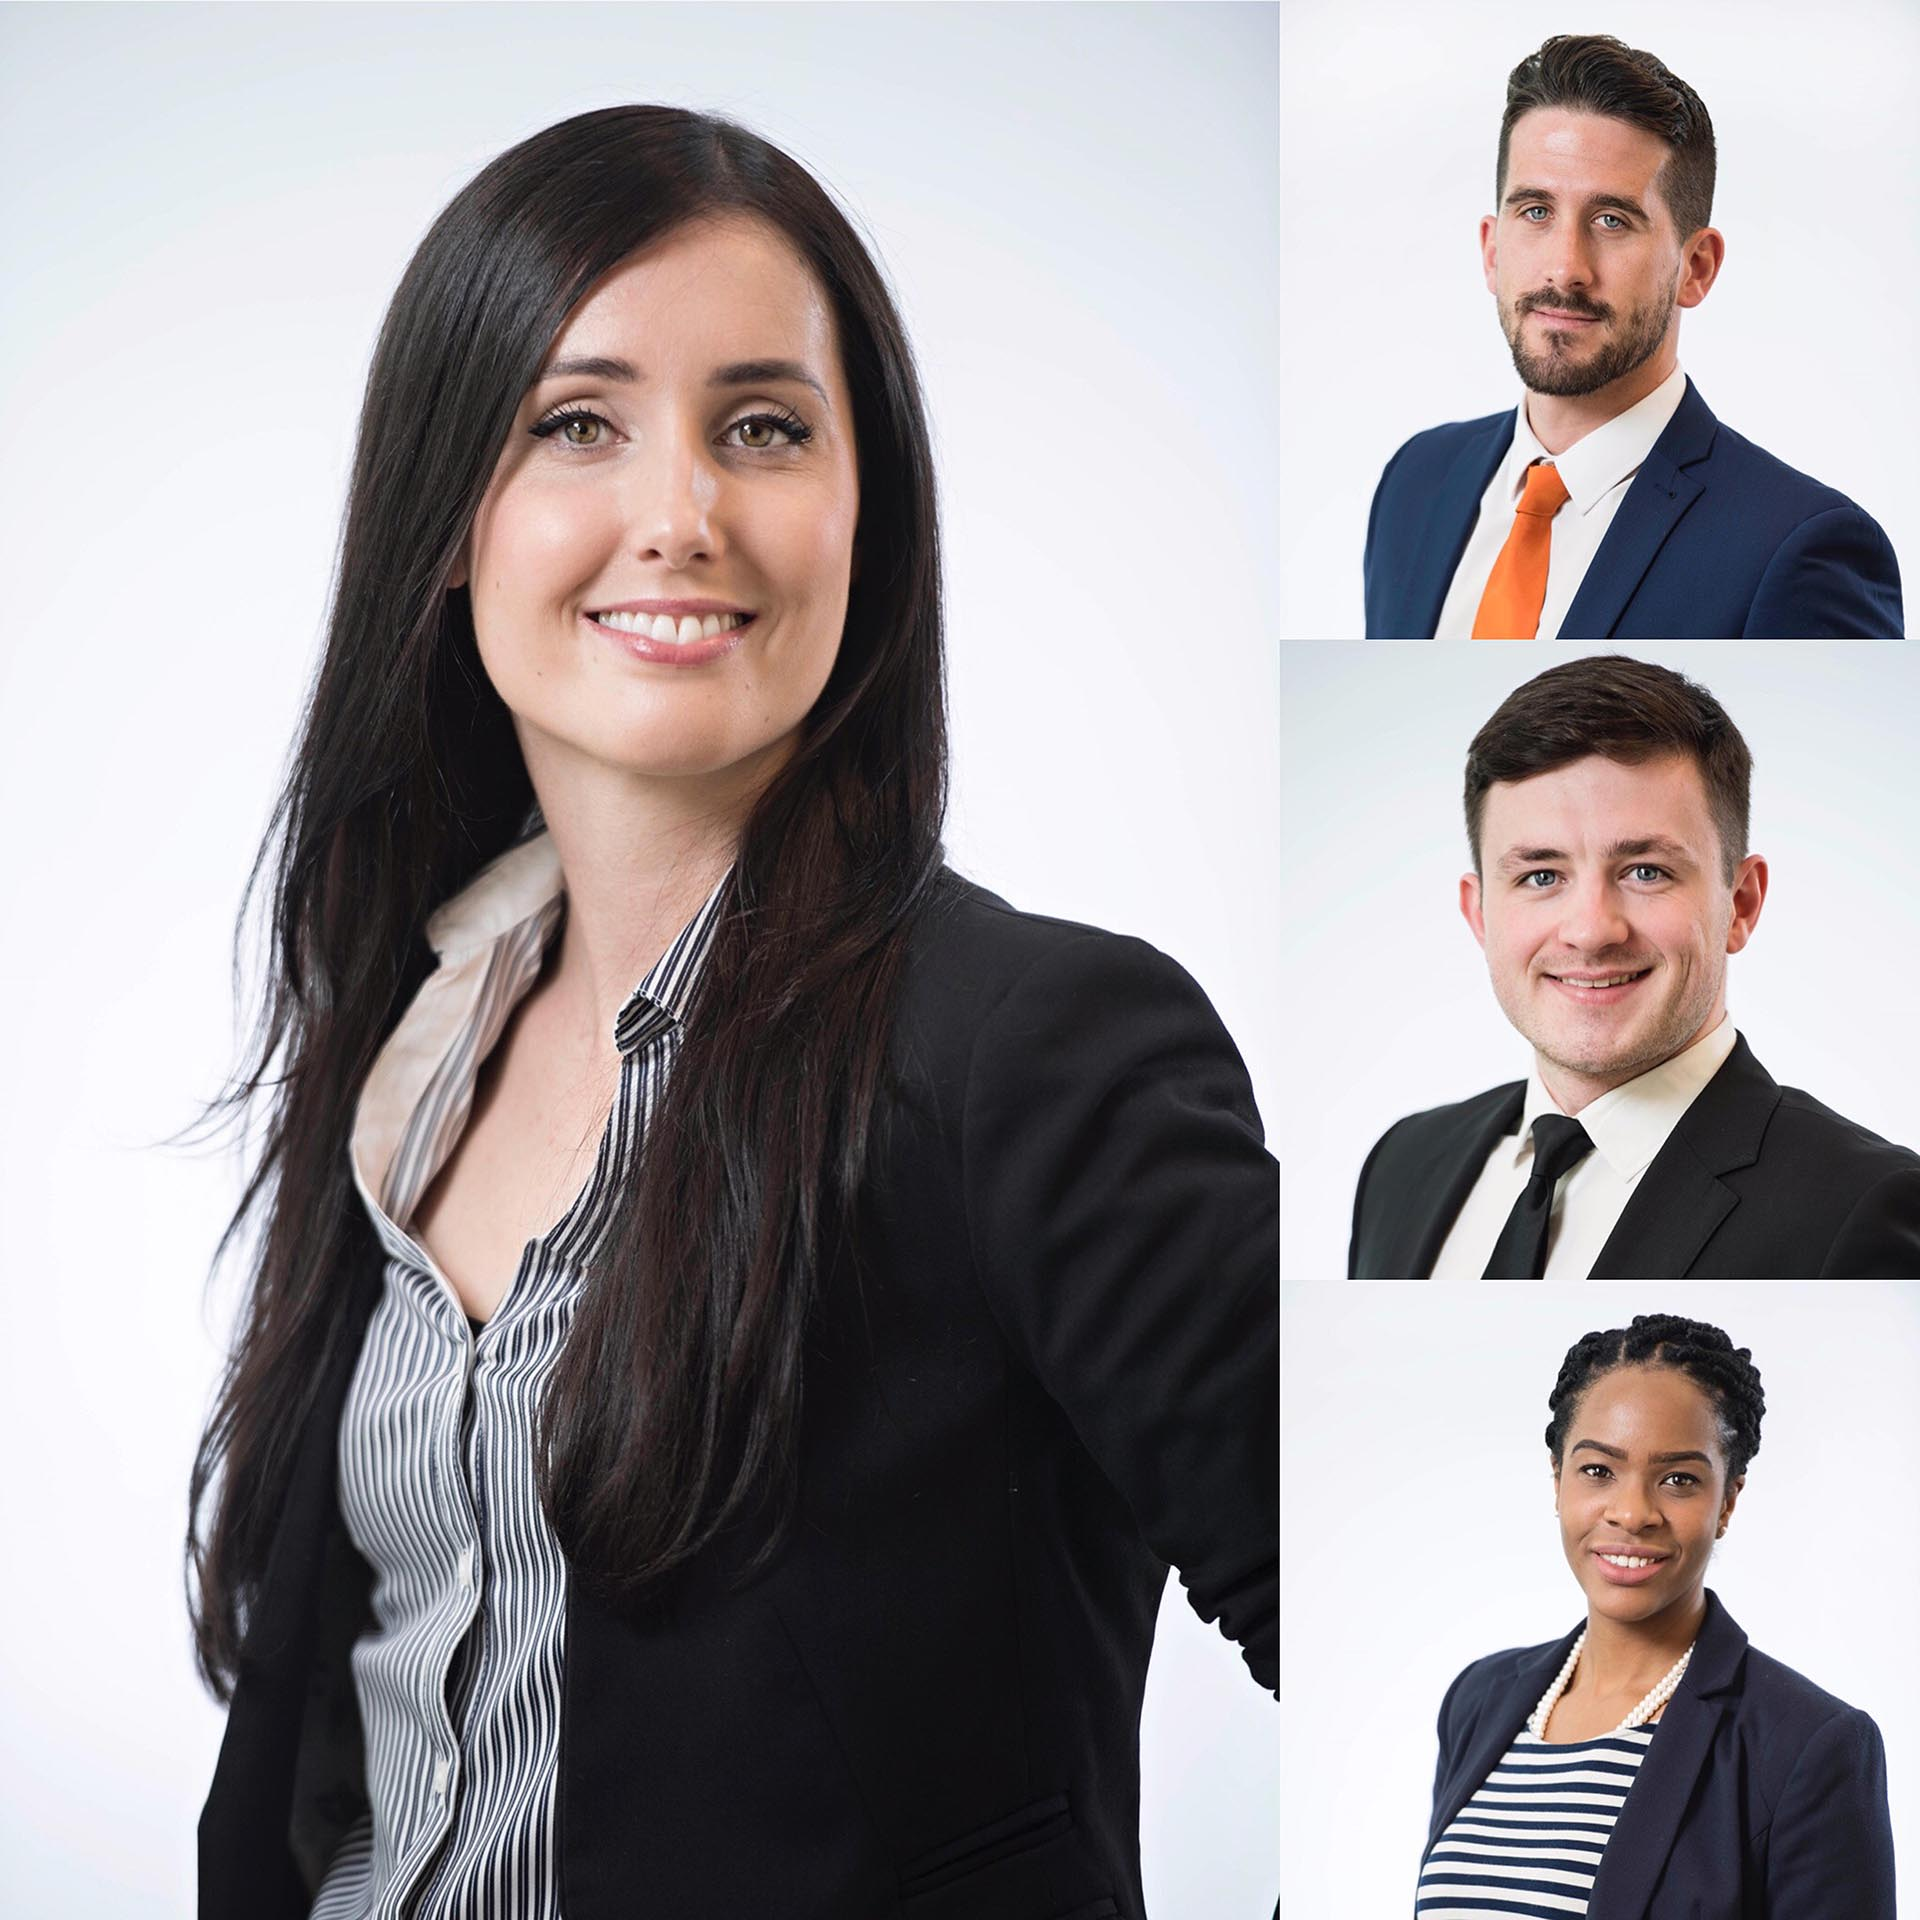 Photograph of Team members of UK Law firm various team member headshots photography by Jon Parker Lee